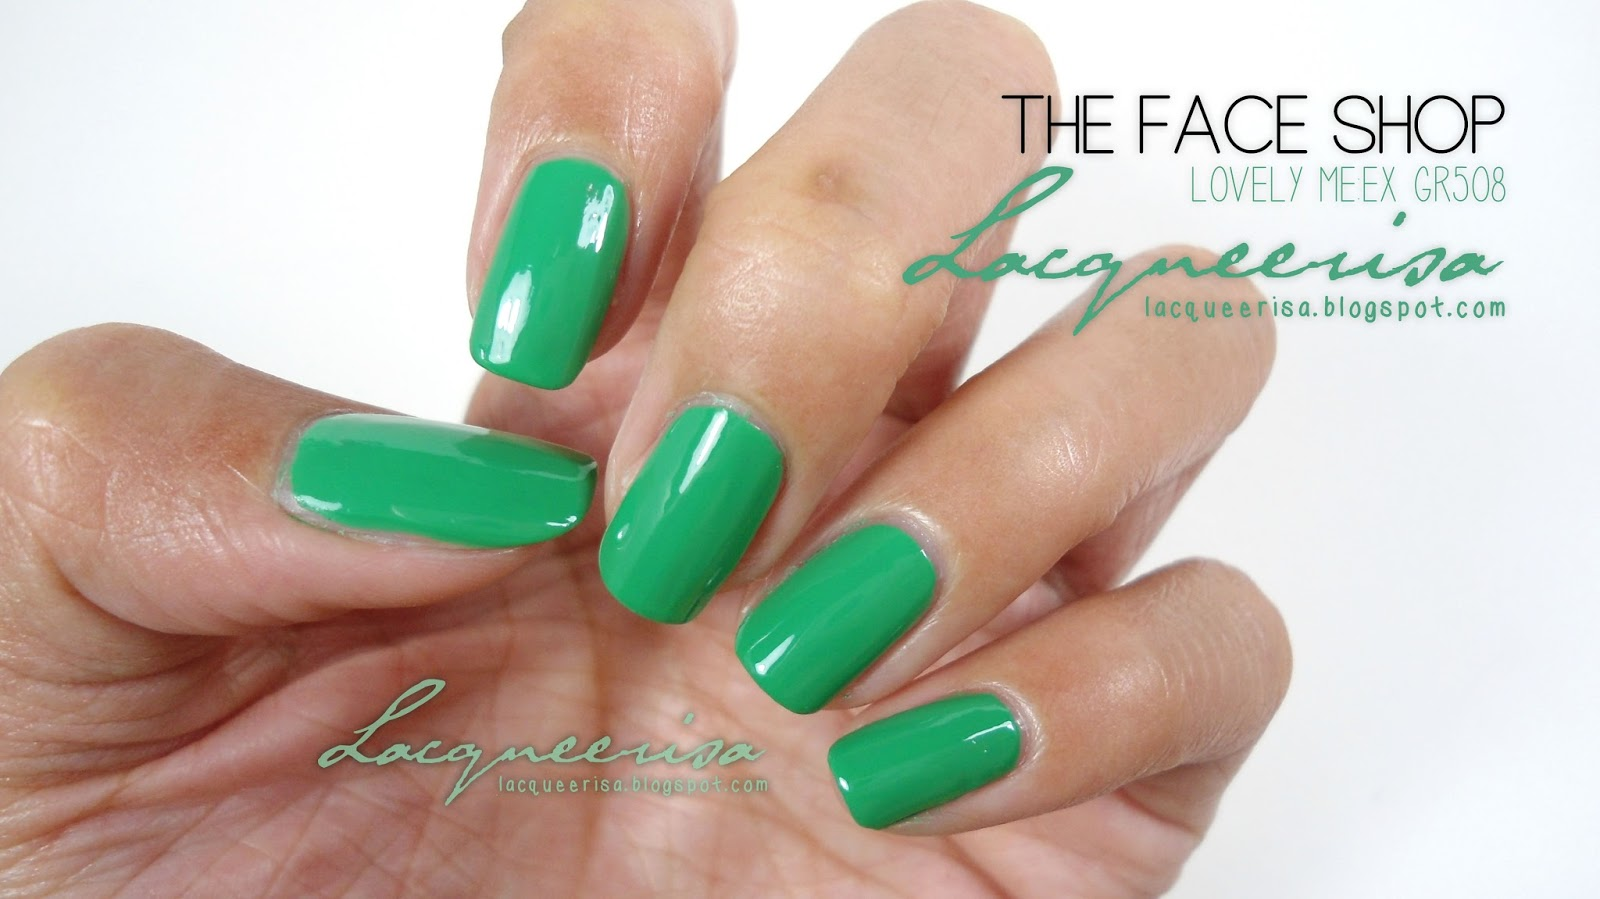 Lacqueerisa: The Face Shop GR508